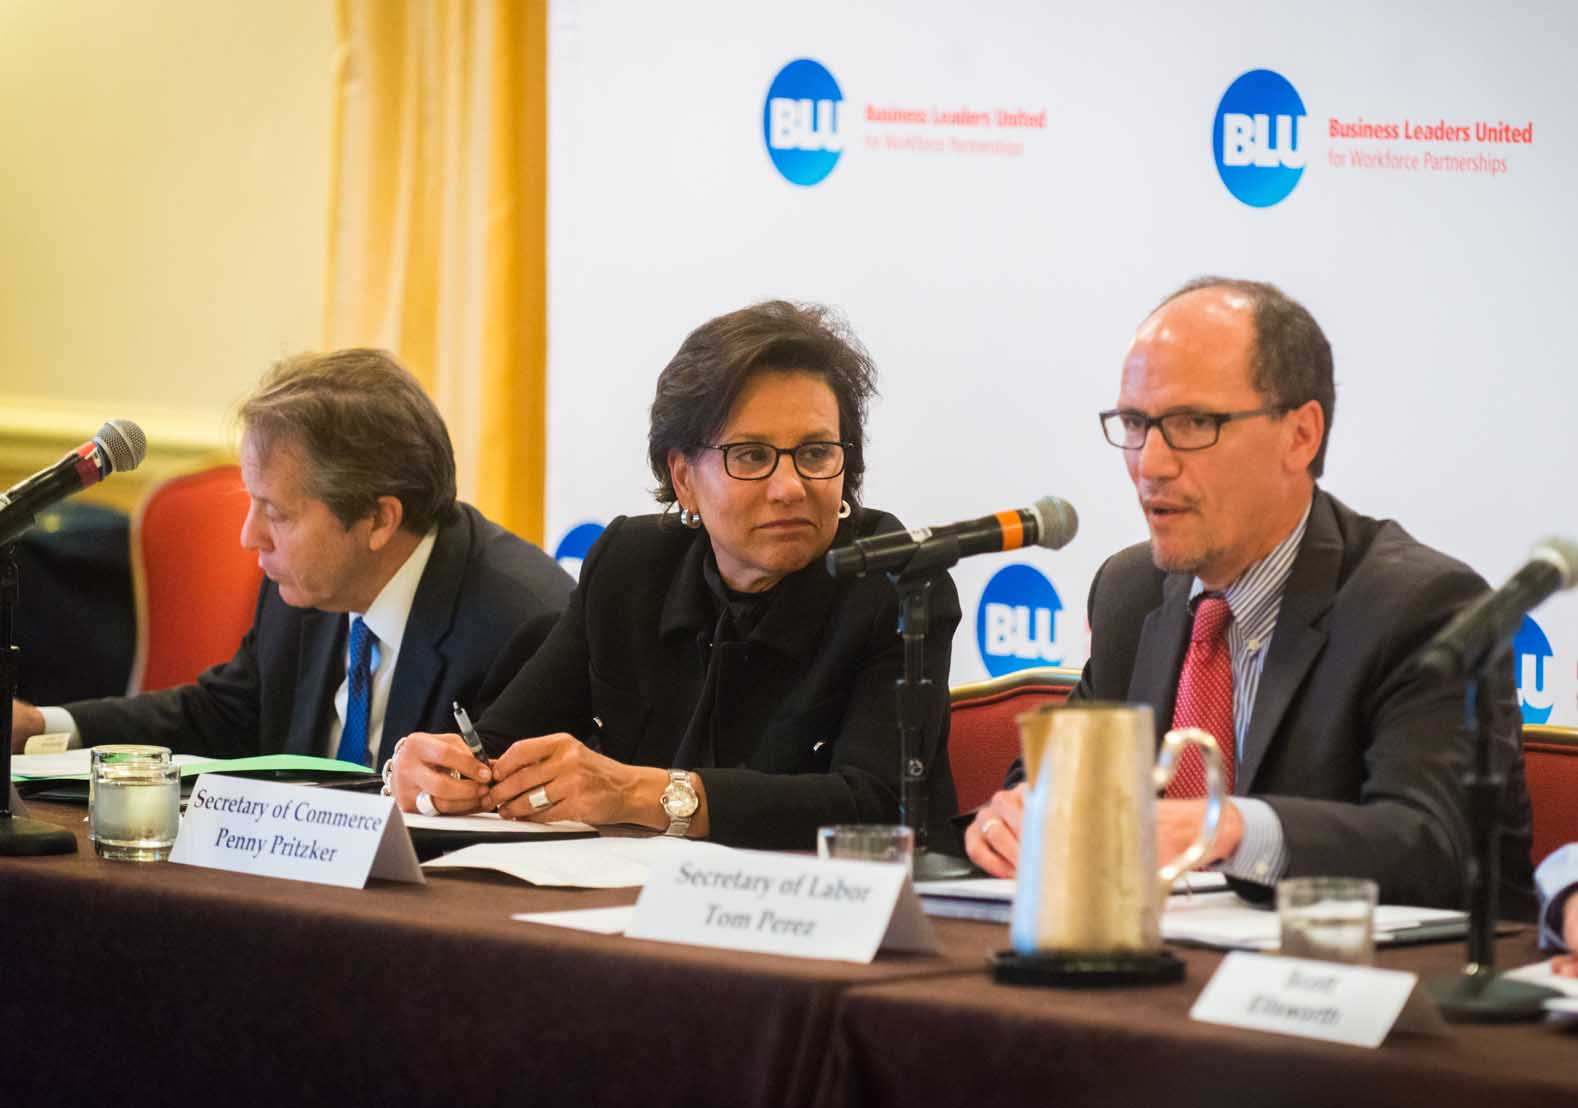 Secretary of Commerce Penny Pritzker and Secretary of Labor Tom Perez Discuss Skills Gap with BLU